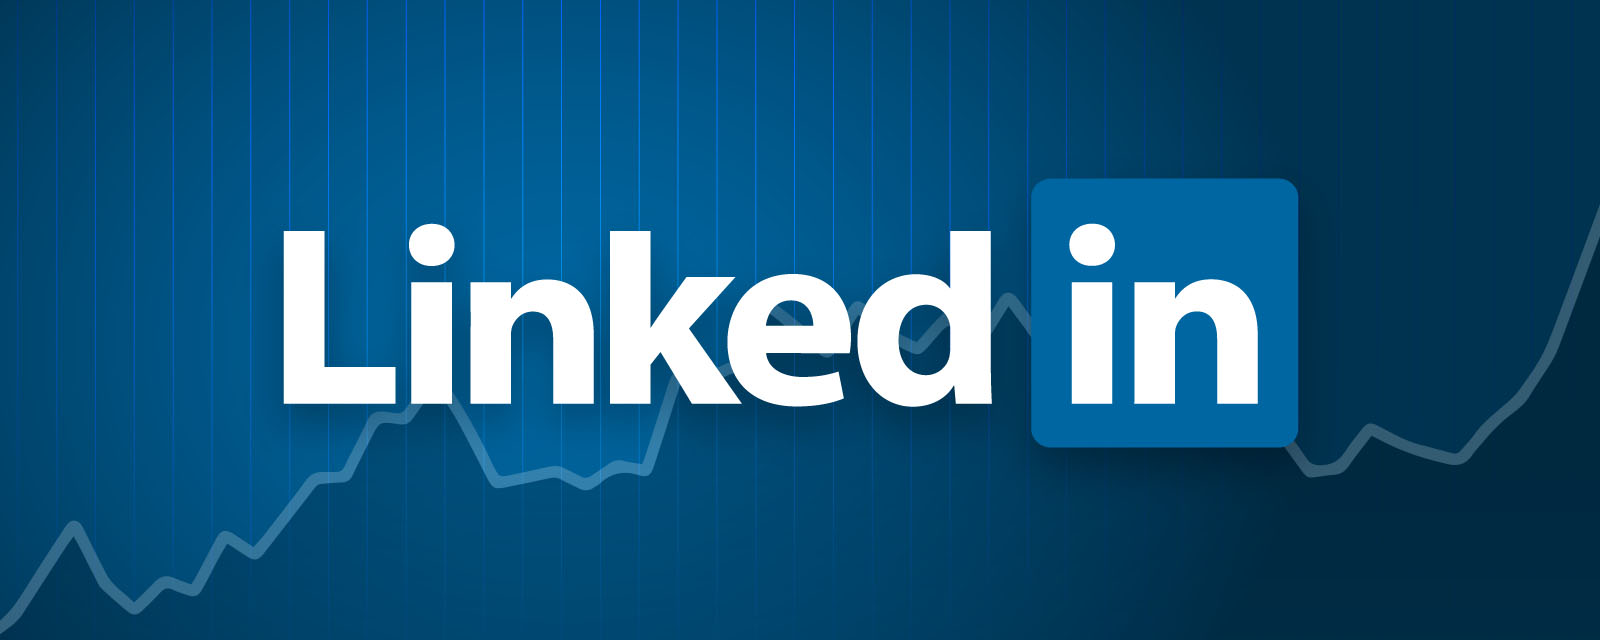 UK employers now have access to 20m candidates on LinkedIn